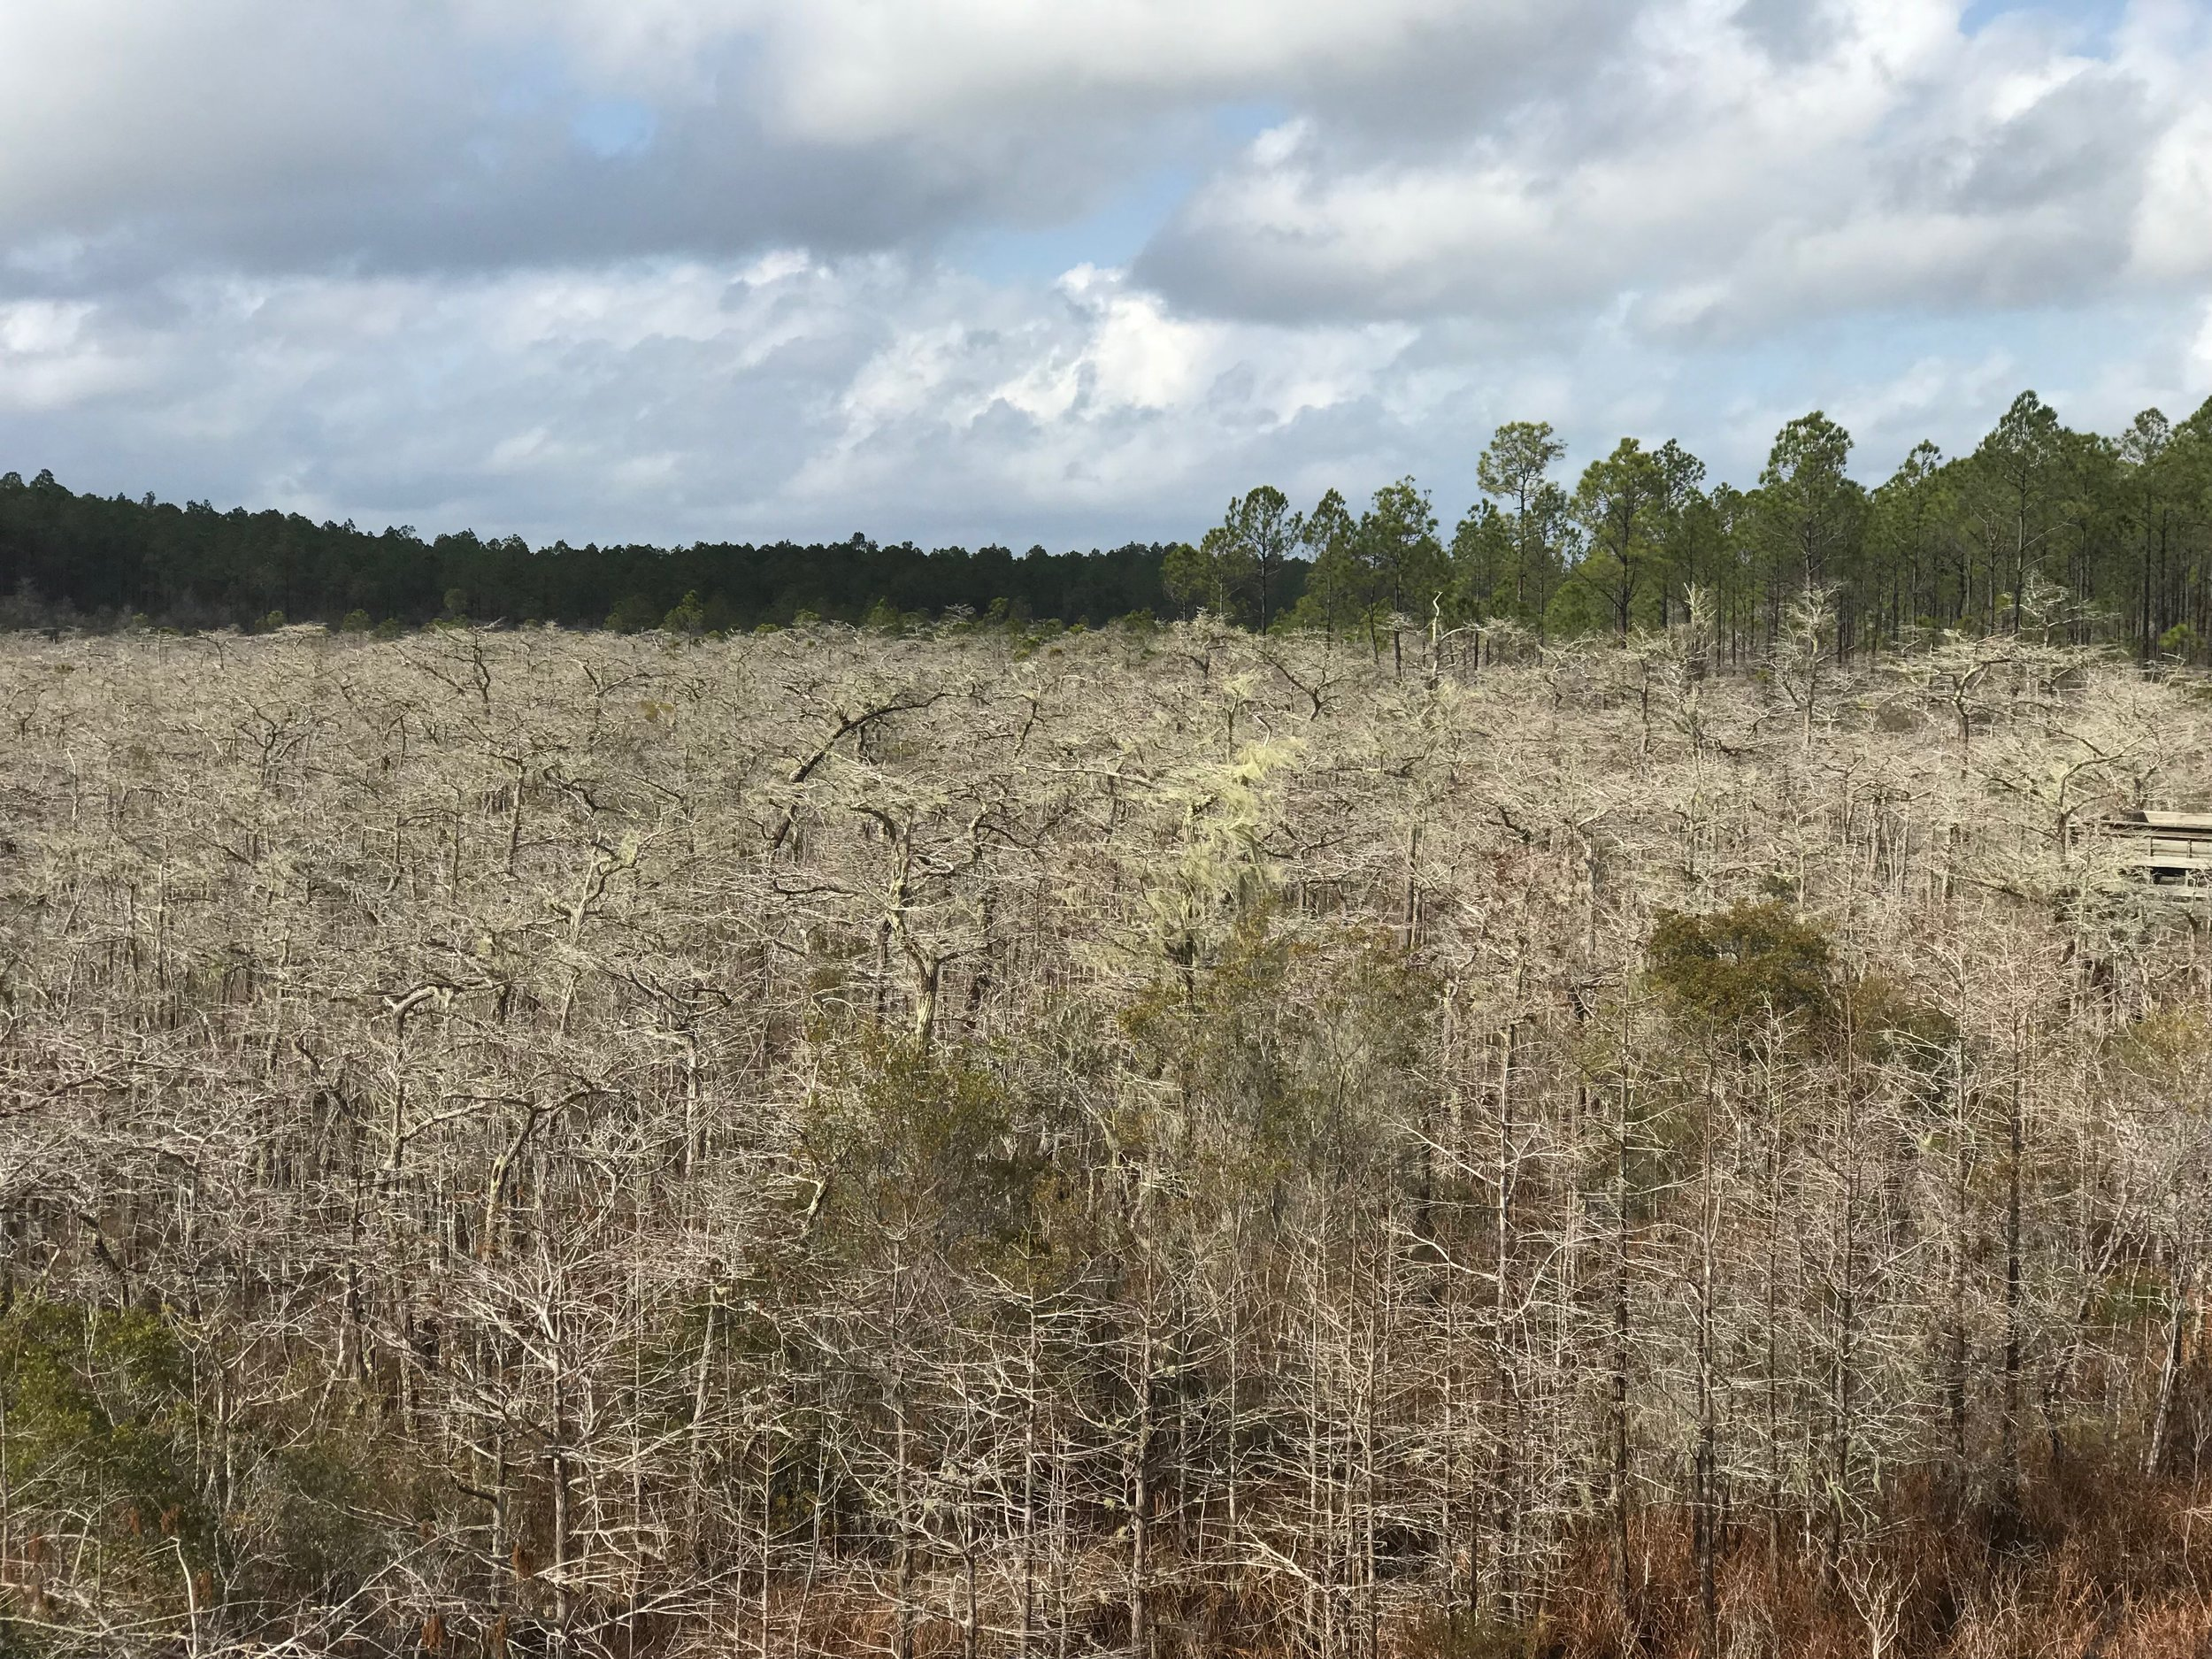 A forest of dwarf cypress trees, some thought to be 300 years old, in Tate's Hell State Forest.